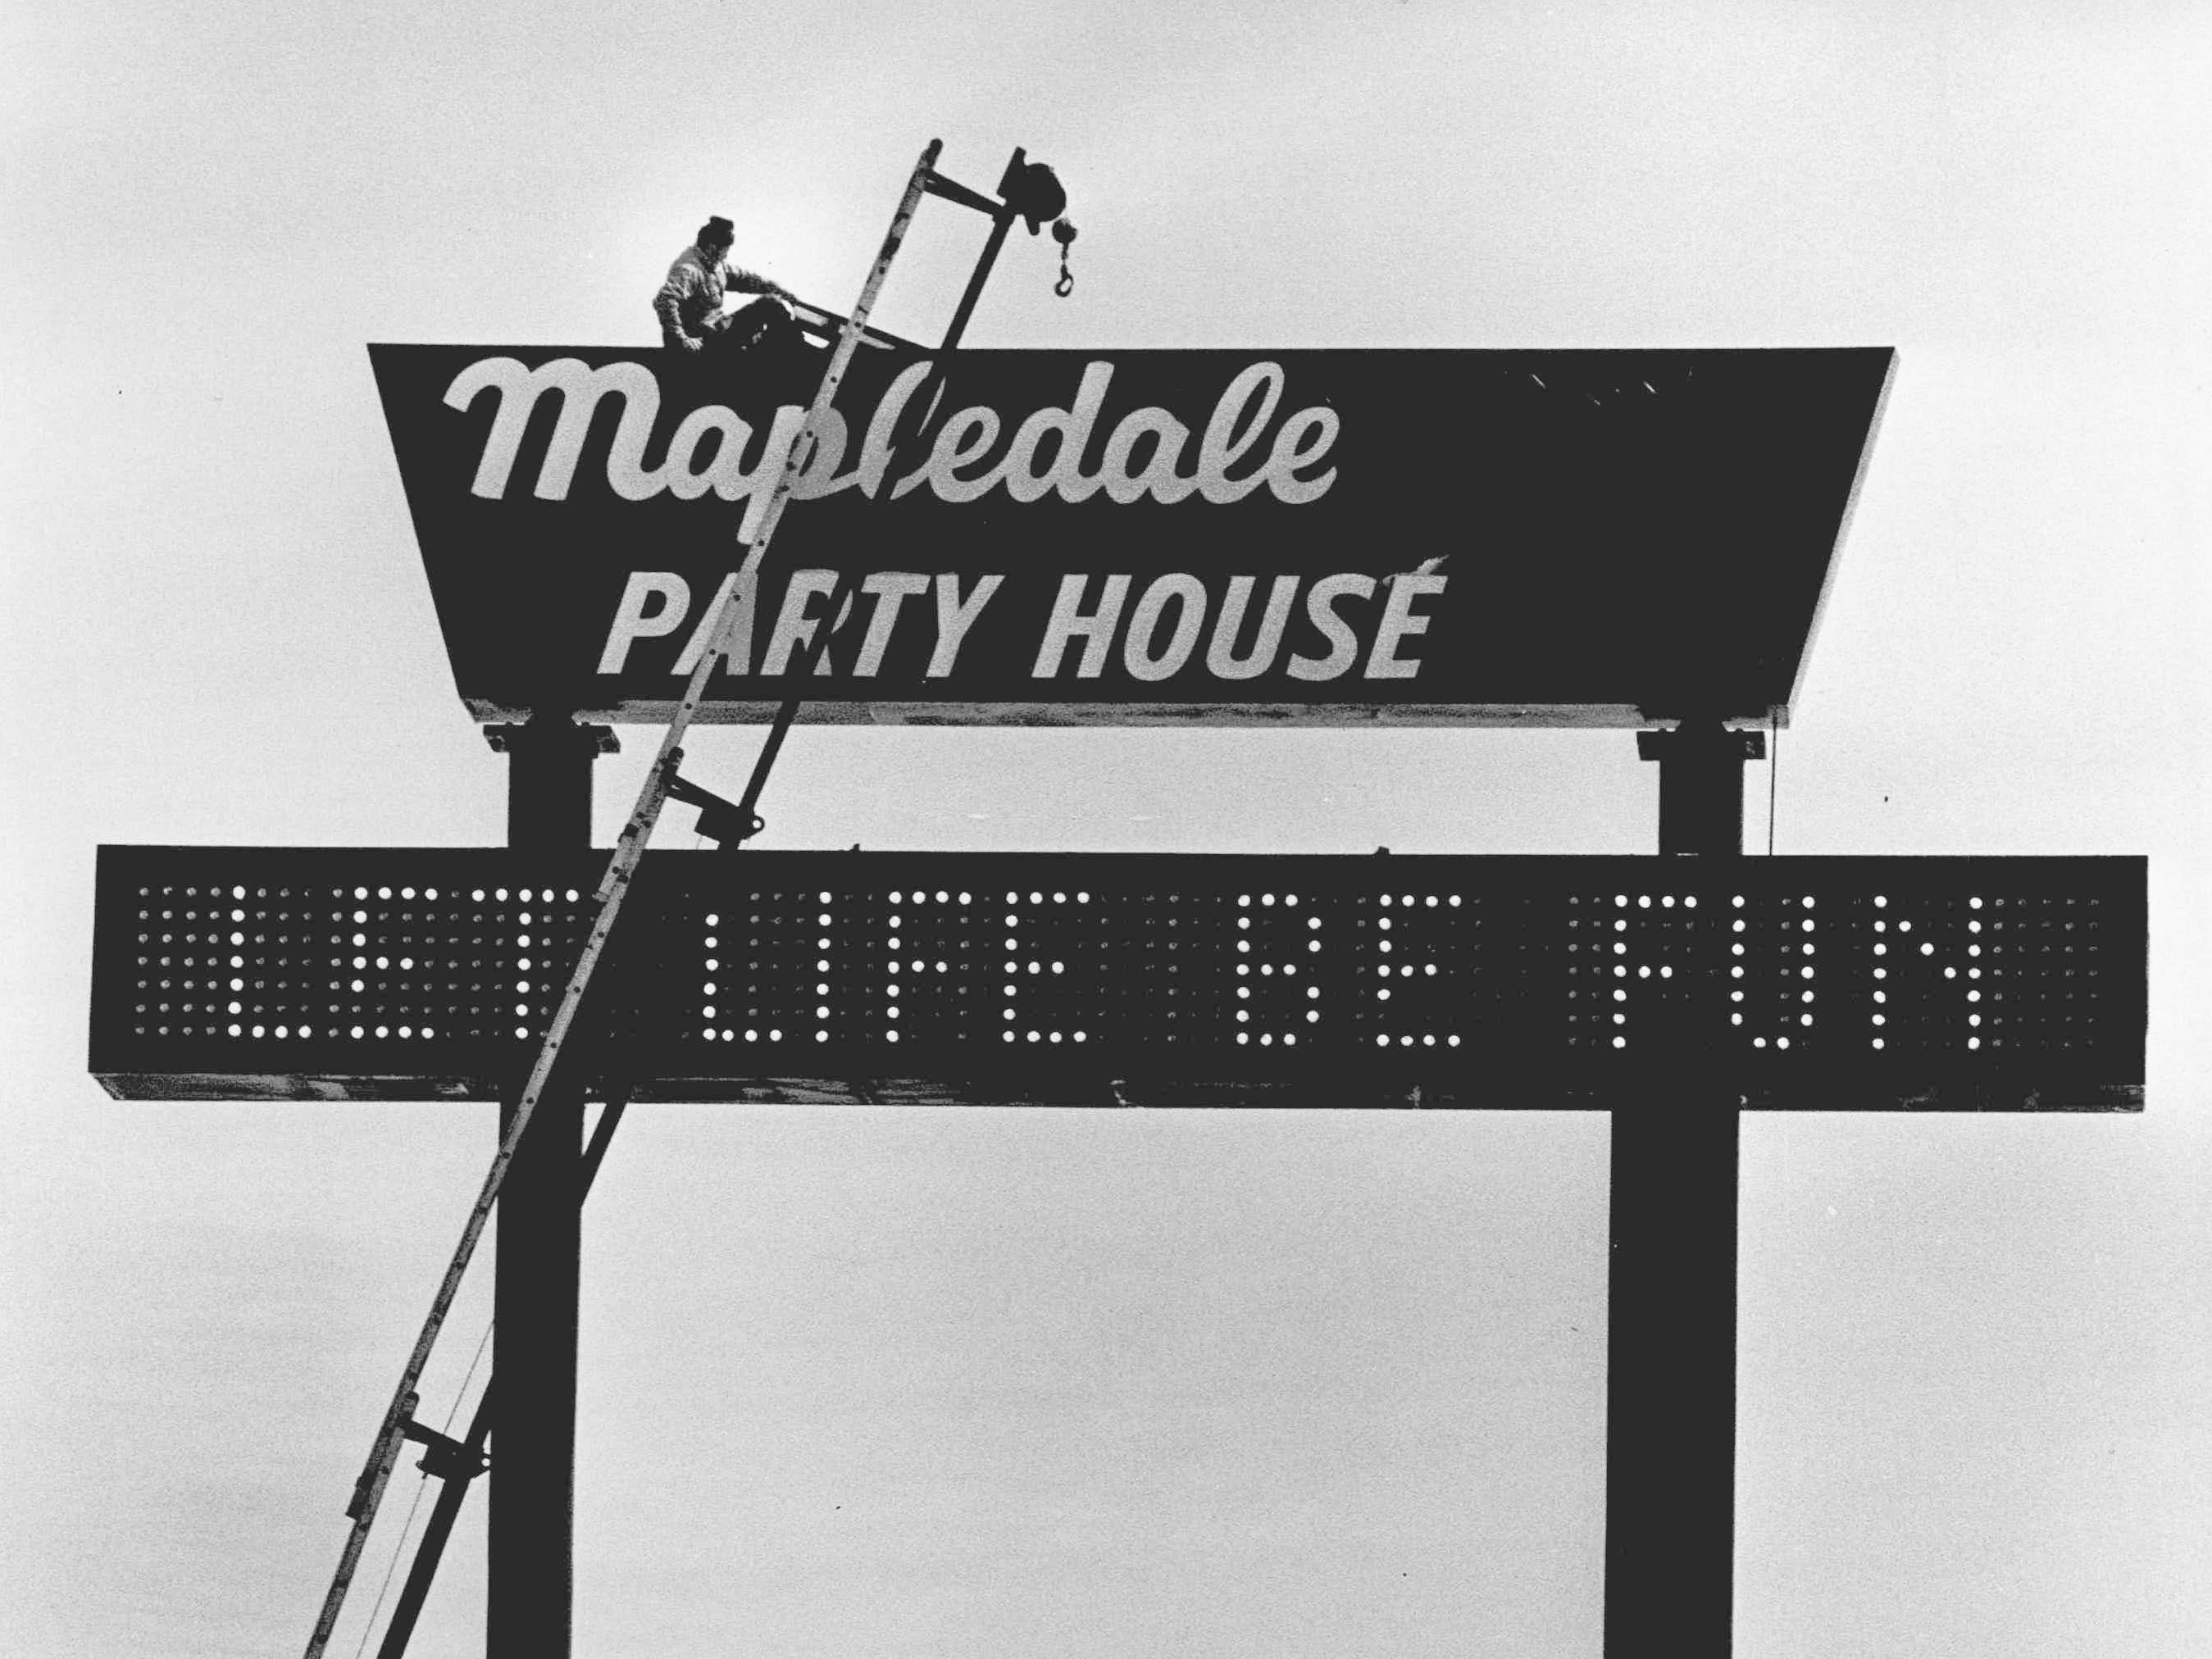 Routine maintenance is being done on sign at Mapledale Party House after a windstorm in 1979.